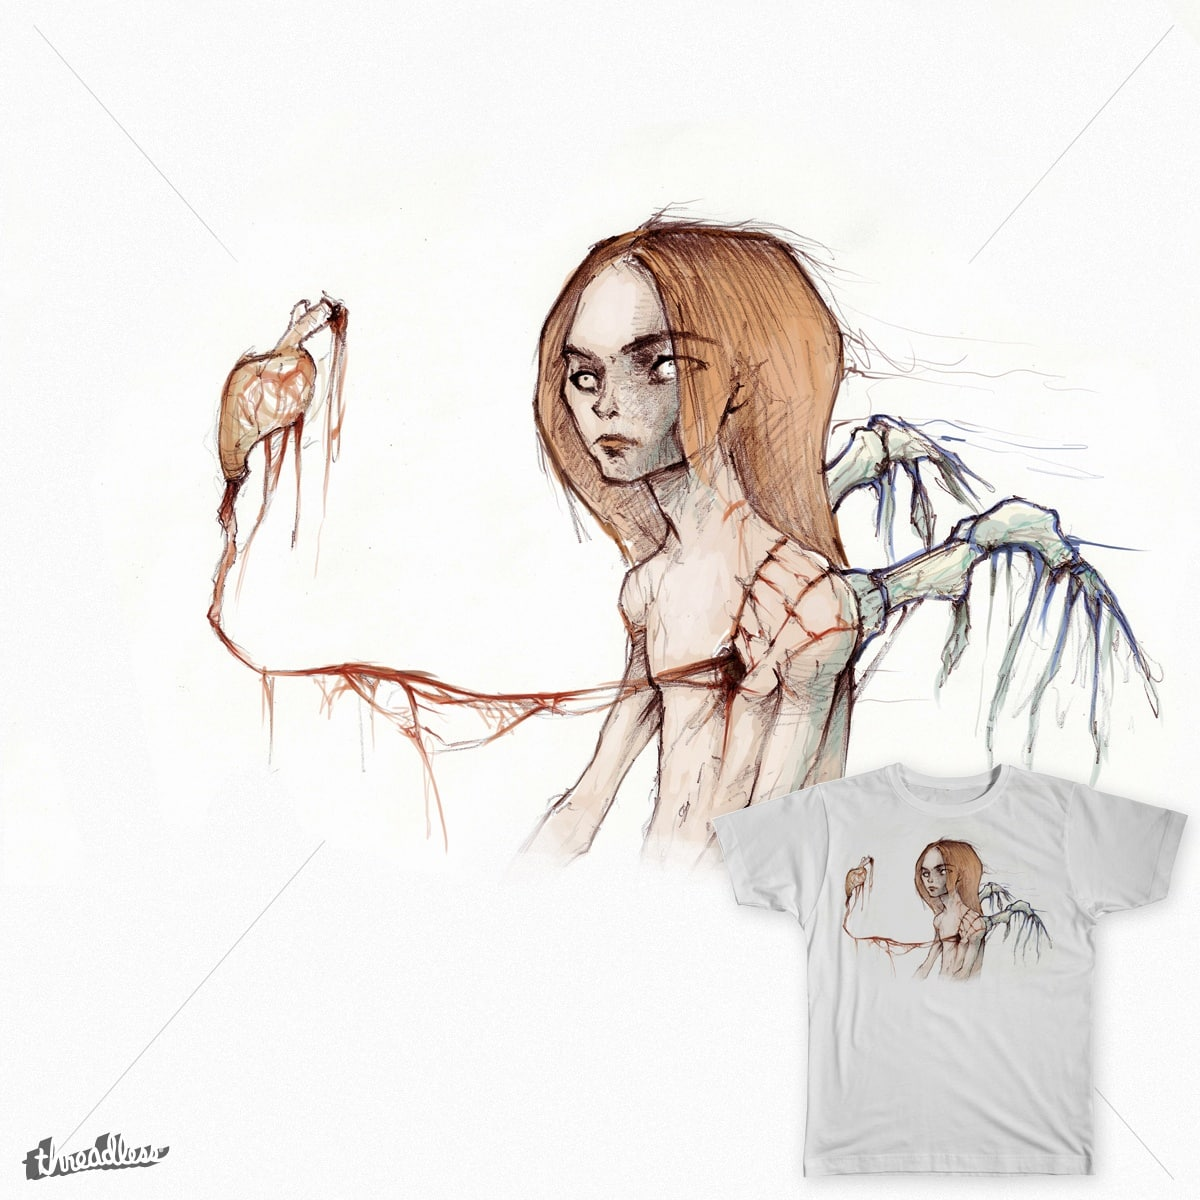 Angel of floating heart by yuval.hermon on Threadless